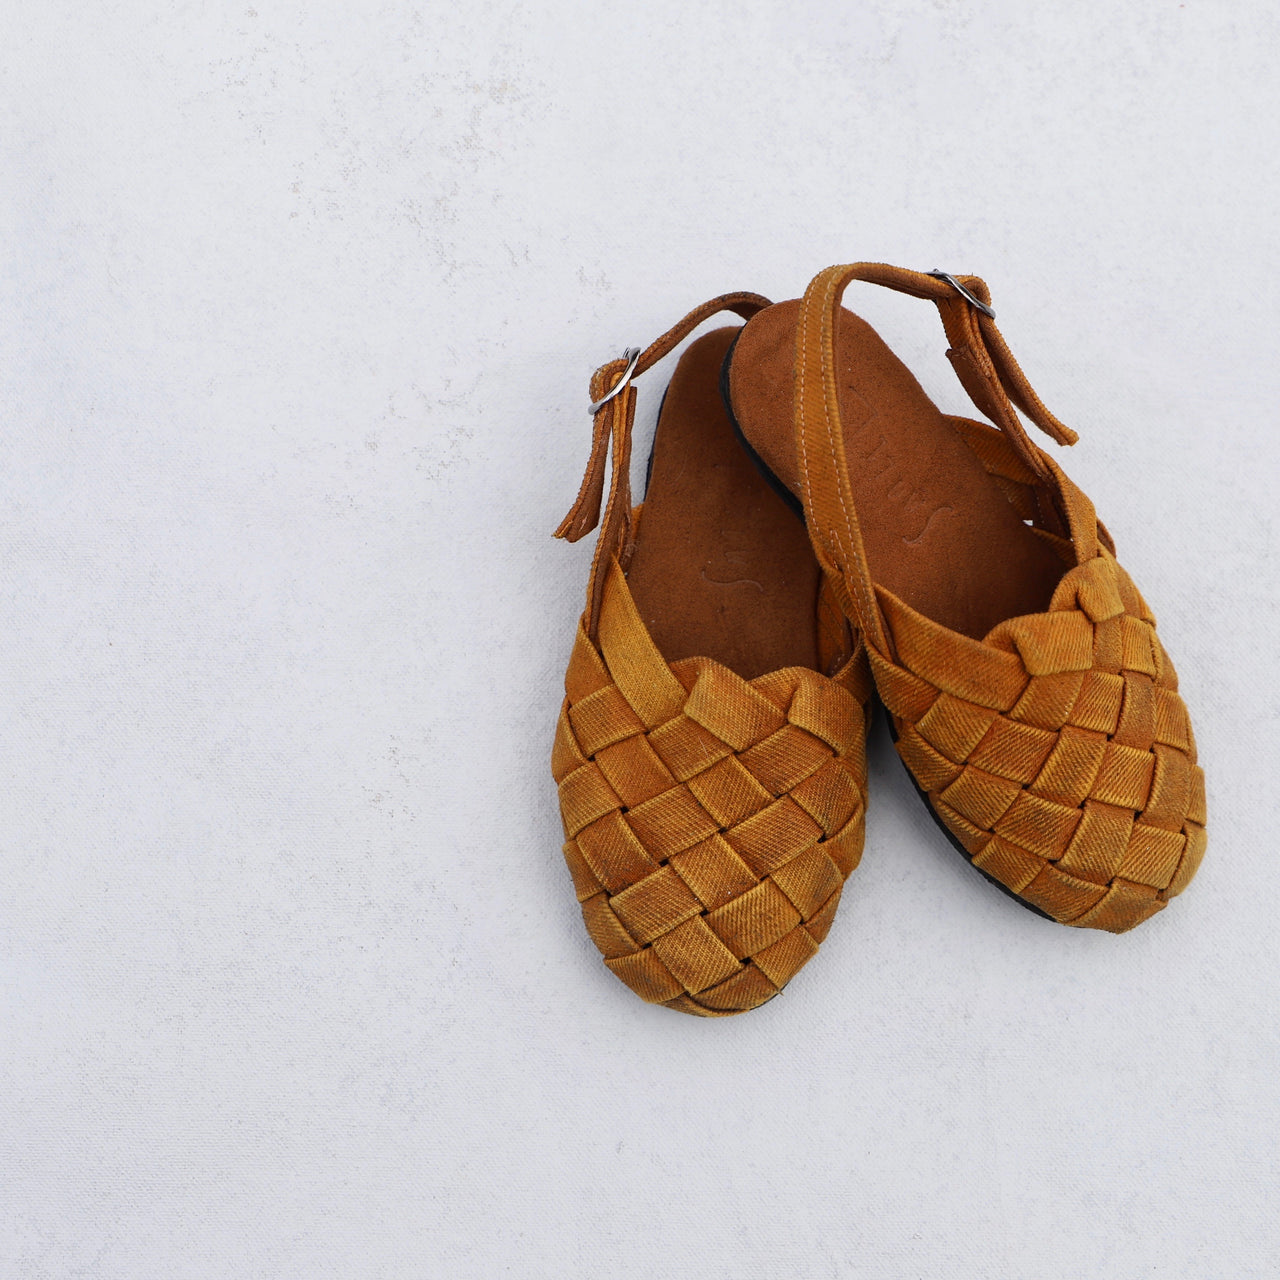 Woven Sandal | Big Kid and Youth